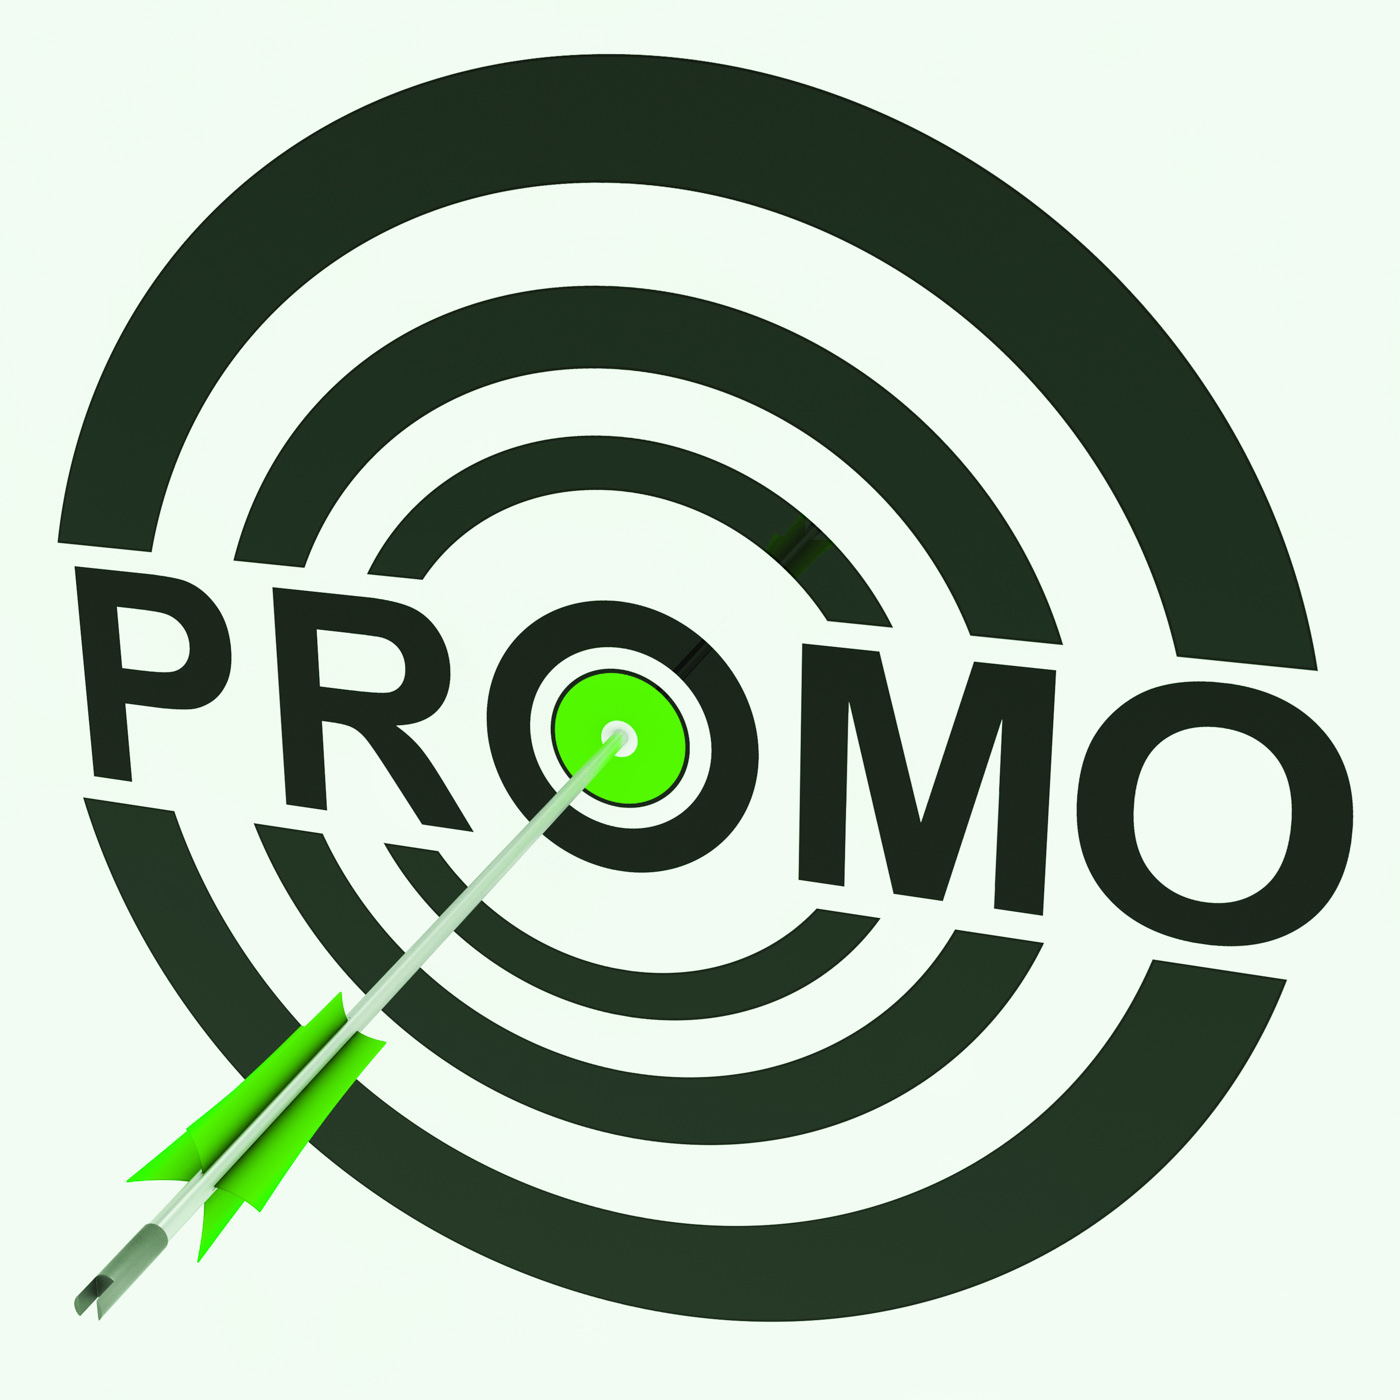 Promo target shows promoted shopping sale photo